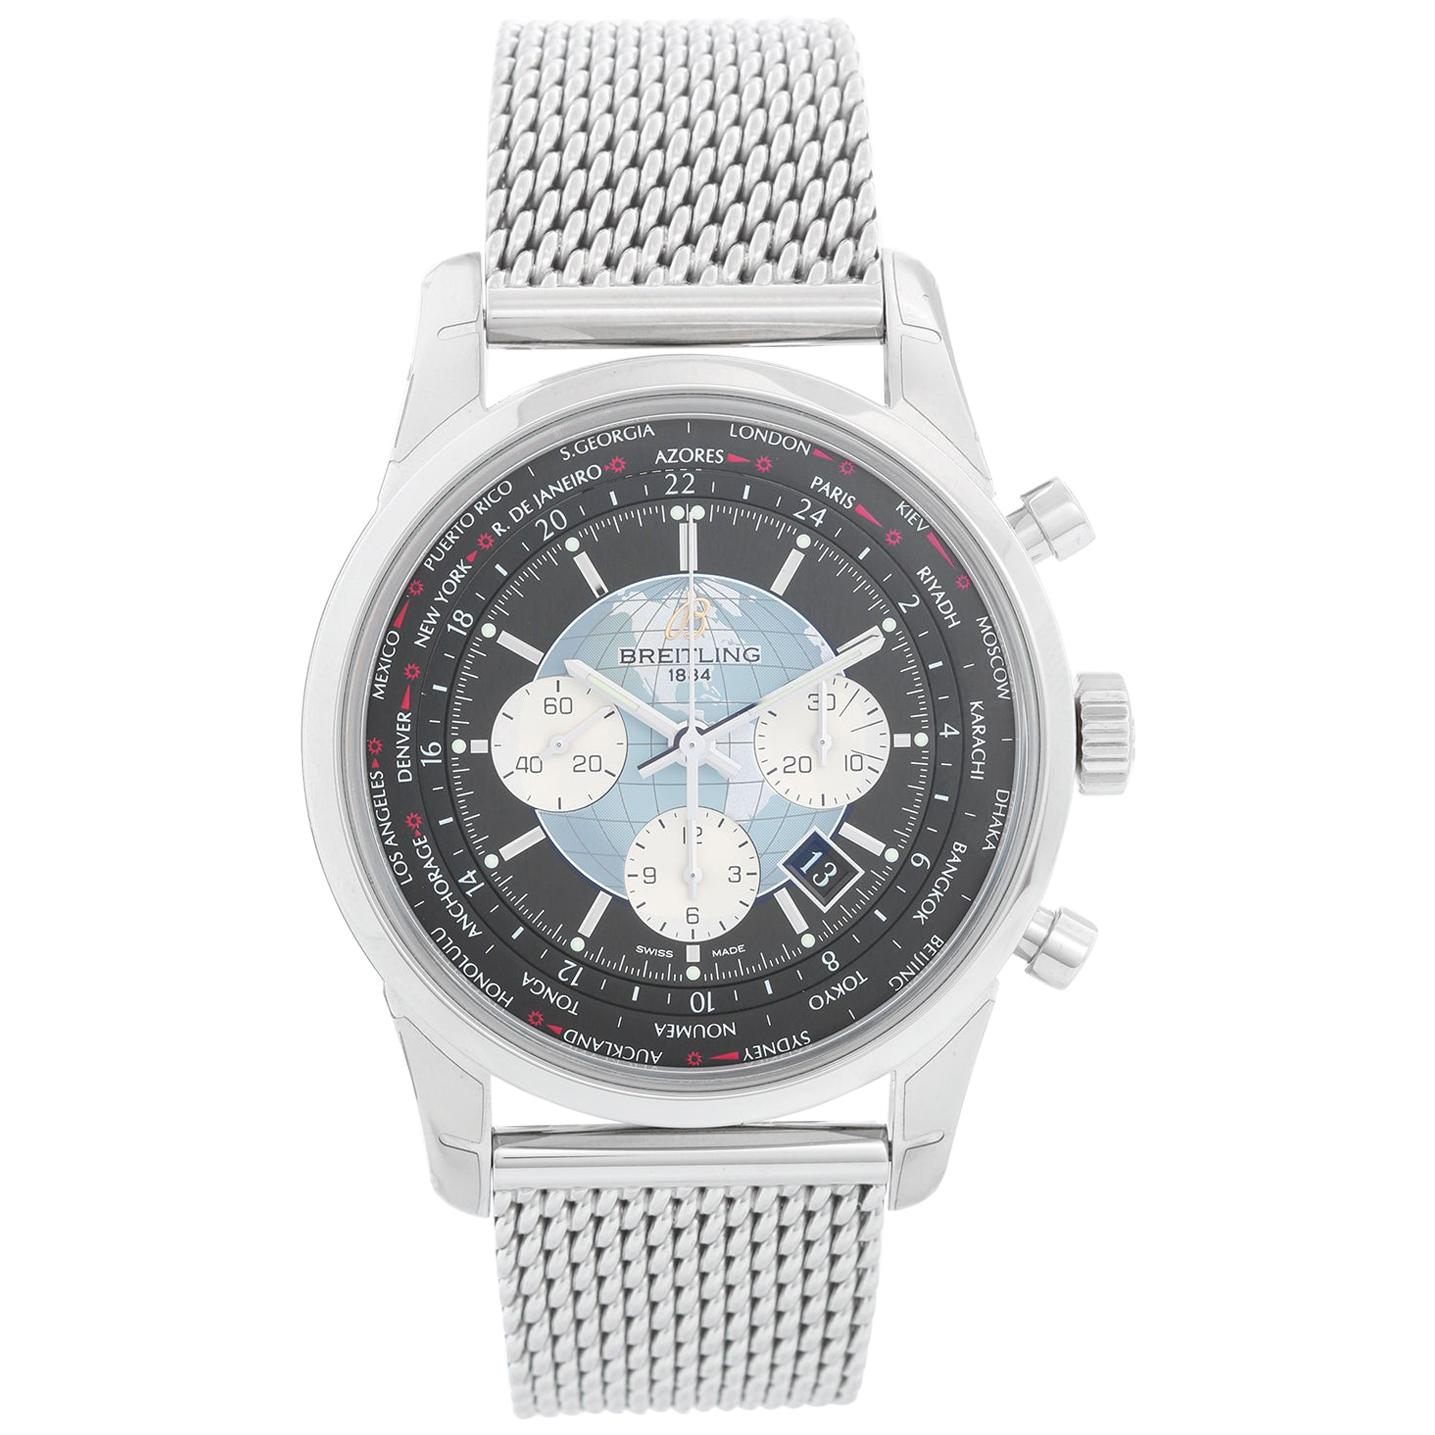 Breitling Transocean Chronograph Unitime Stainless Steel Watch AB0510U4.BB62.152